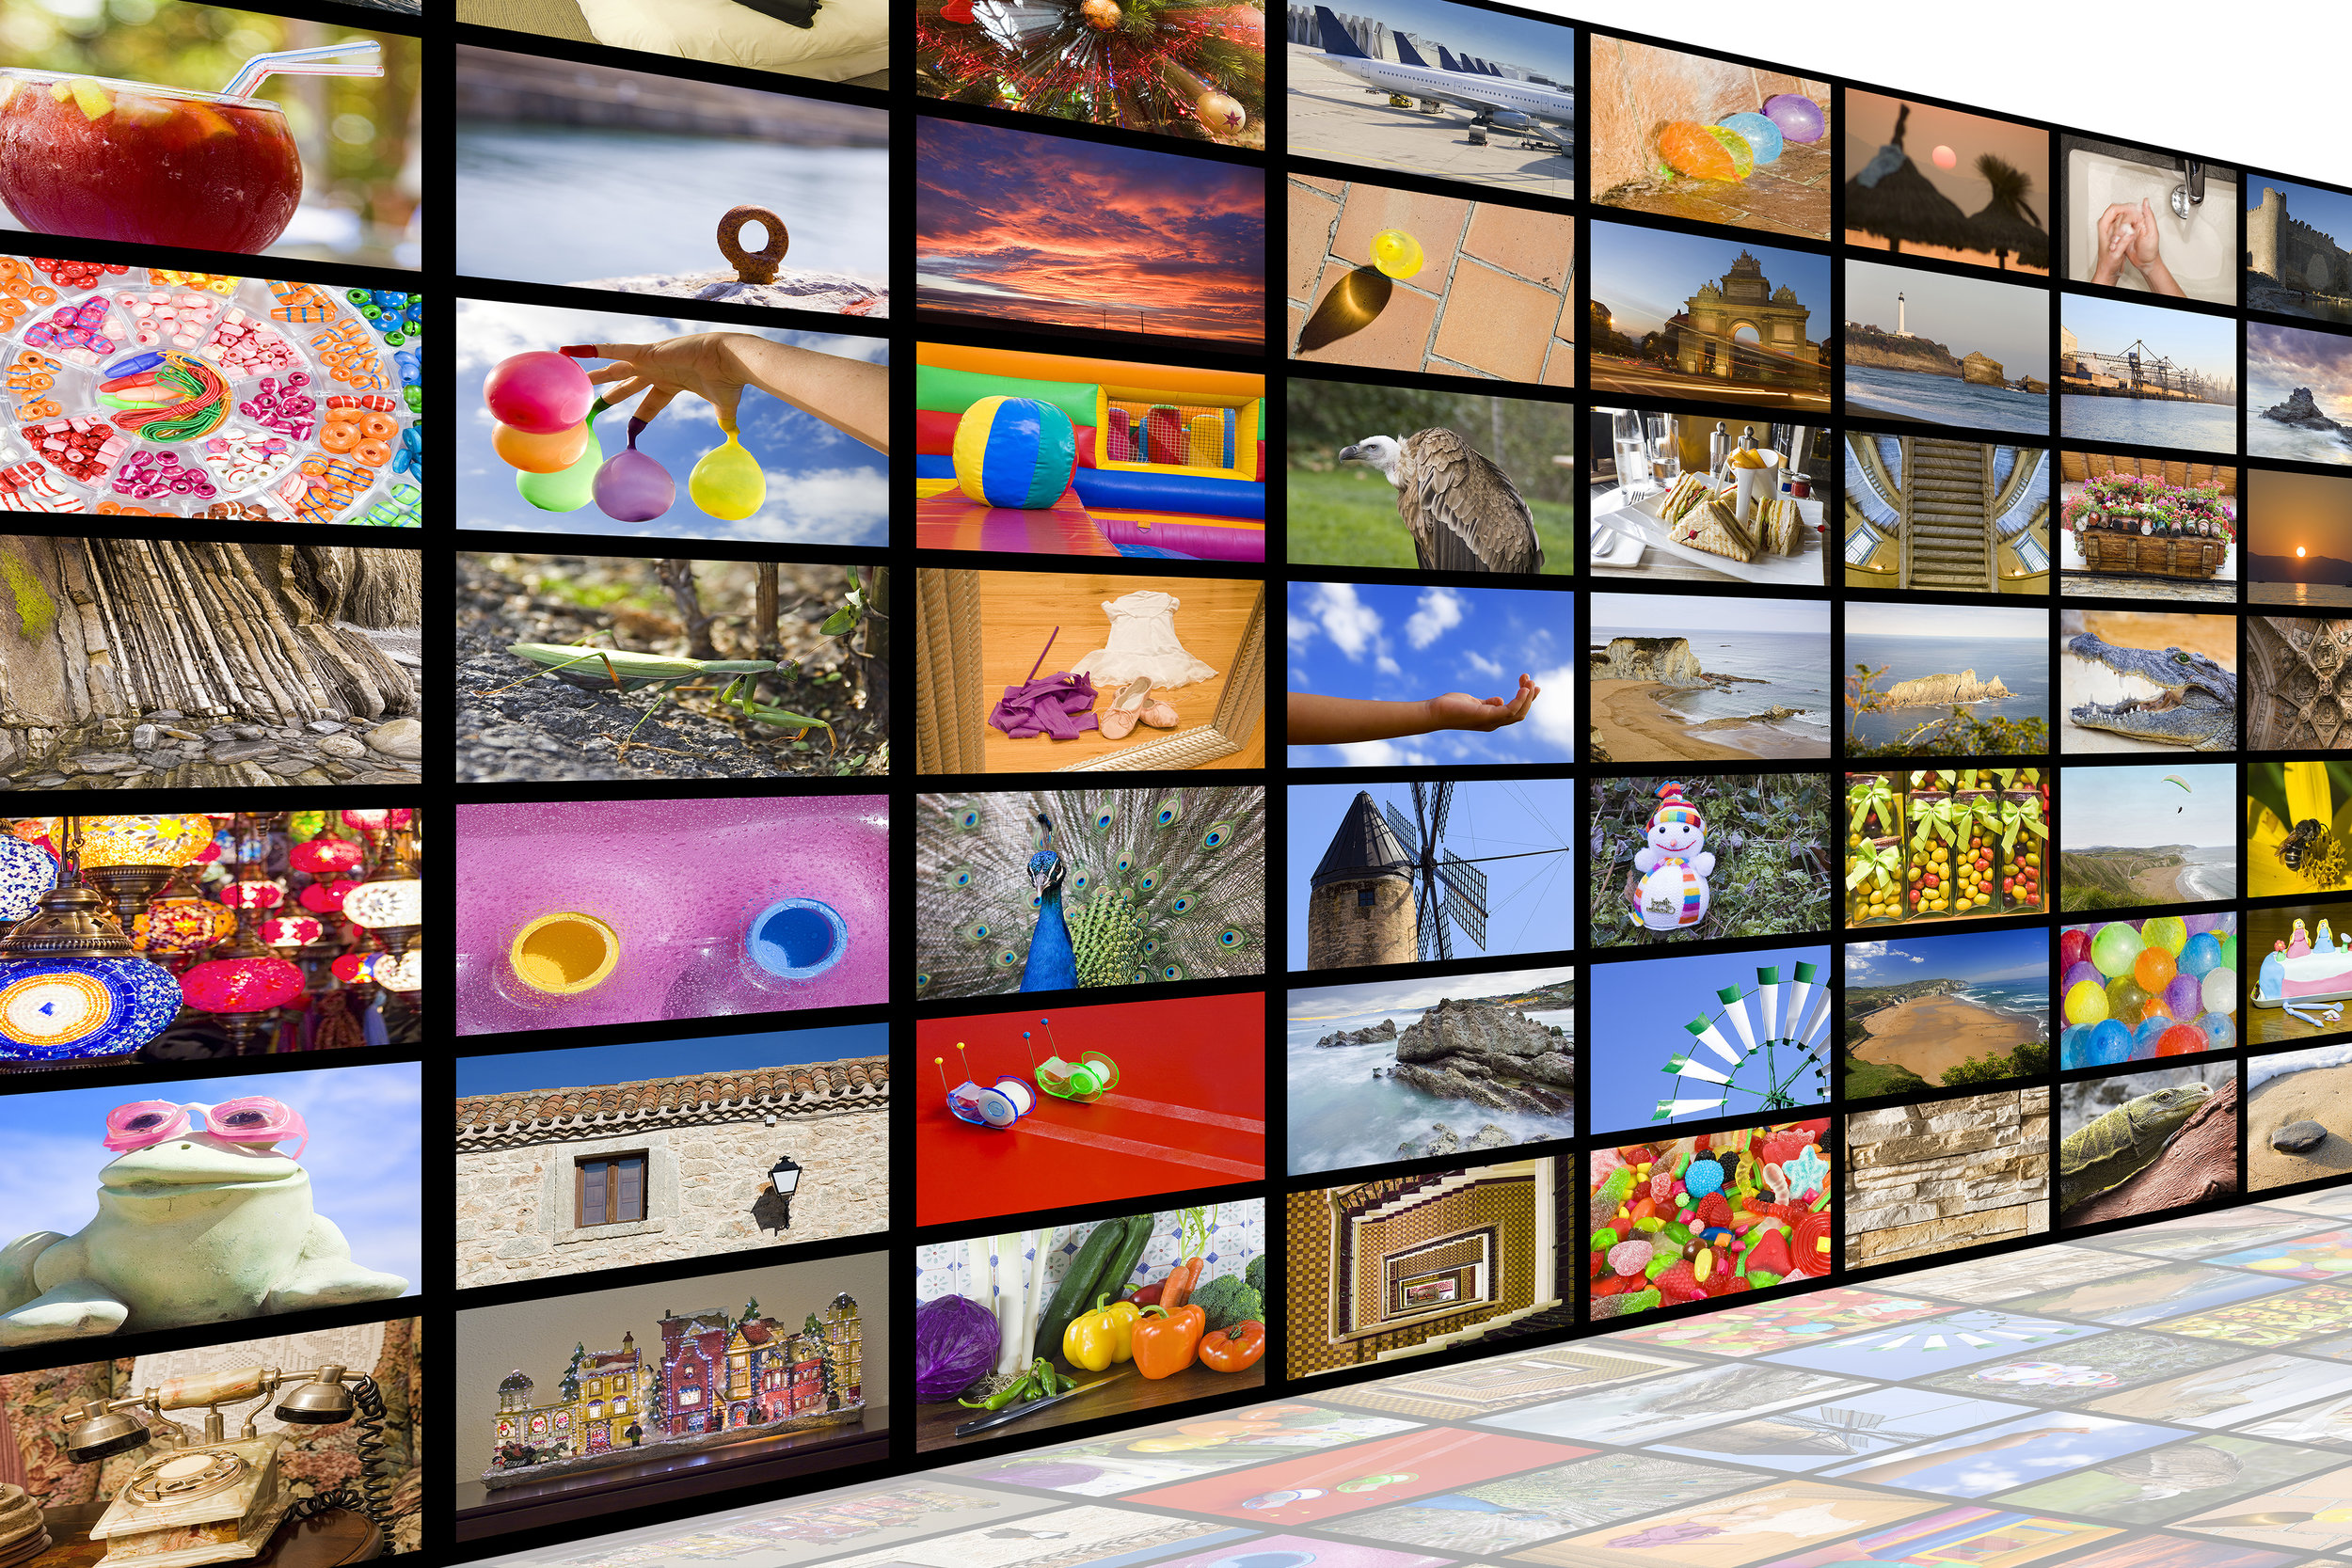 Consumer & Digital Media    As consumers increasingly choose to consume content across non linear TV channels, we help startups and media organizations define their strategy for integrating types of content across existing SVOD services and/or launching direct custom SVOD platforms  .